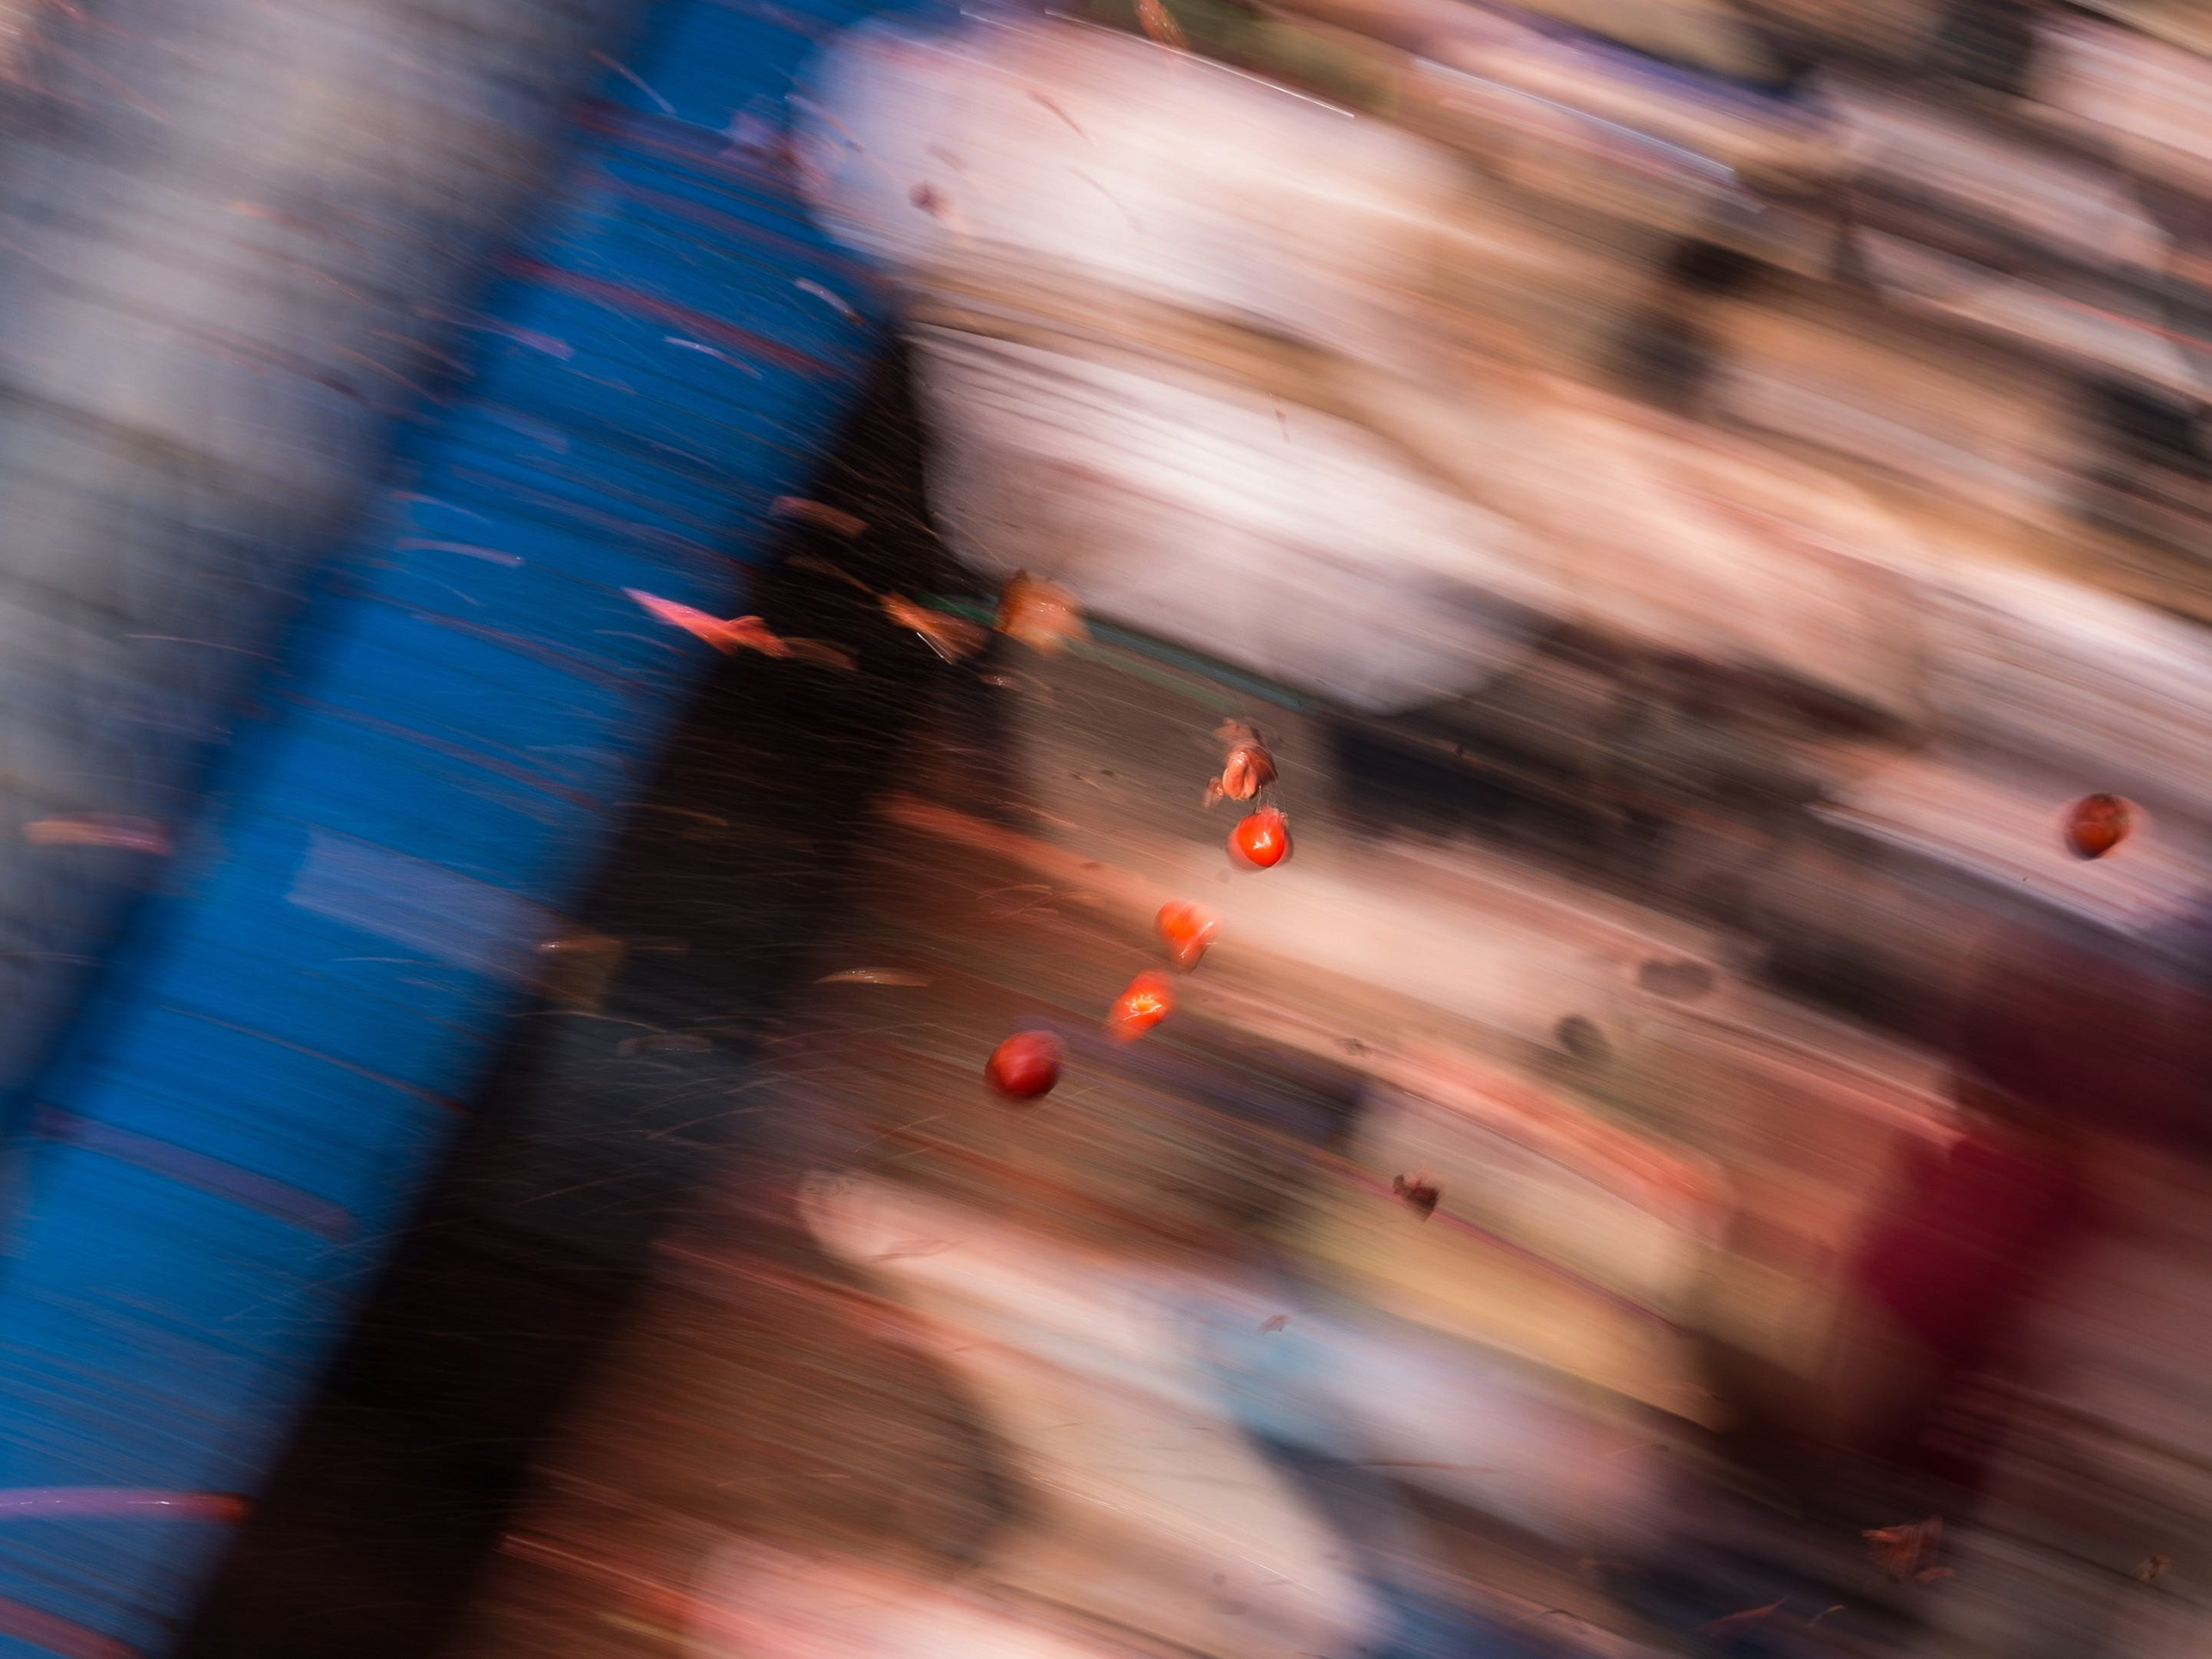 epa06981314 People take part in the traditional Tomatina battle in Bunol, Valencia, 29 August 2018. As every year on the last Wednesday of August, thousands of people visit the small village of Bunol to attend the Tomatina, a battle in which tons of ripe tomatoes are used as weapons. This year, a total of 145 tons of ripe tomatoes will be thrown between more than 22,000 participants.  EPA-EFE/RODRIGO JIMENEZ ORG XMIT: GRAF1774